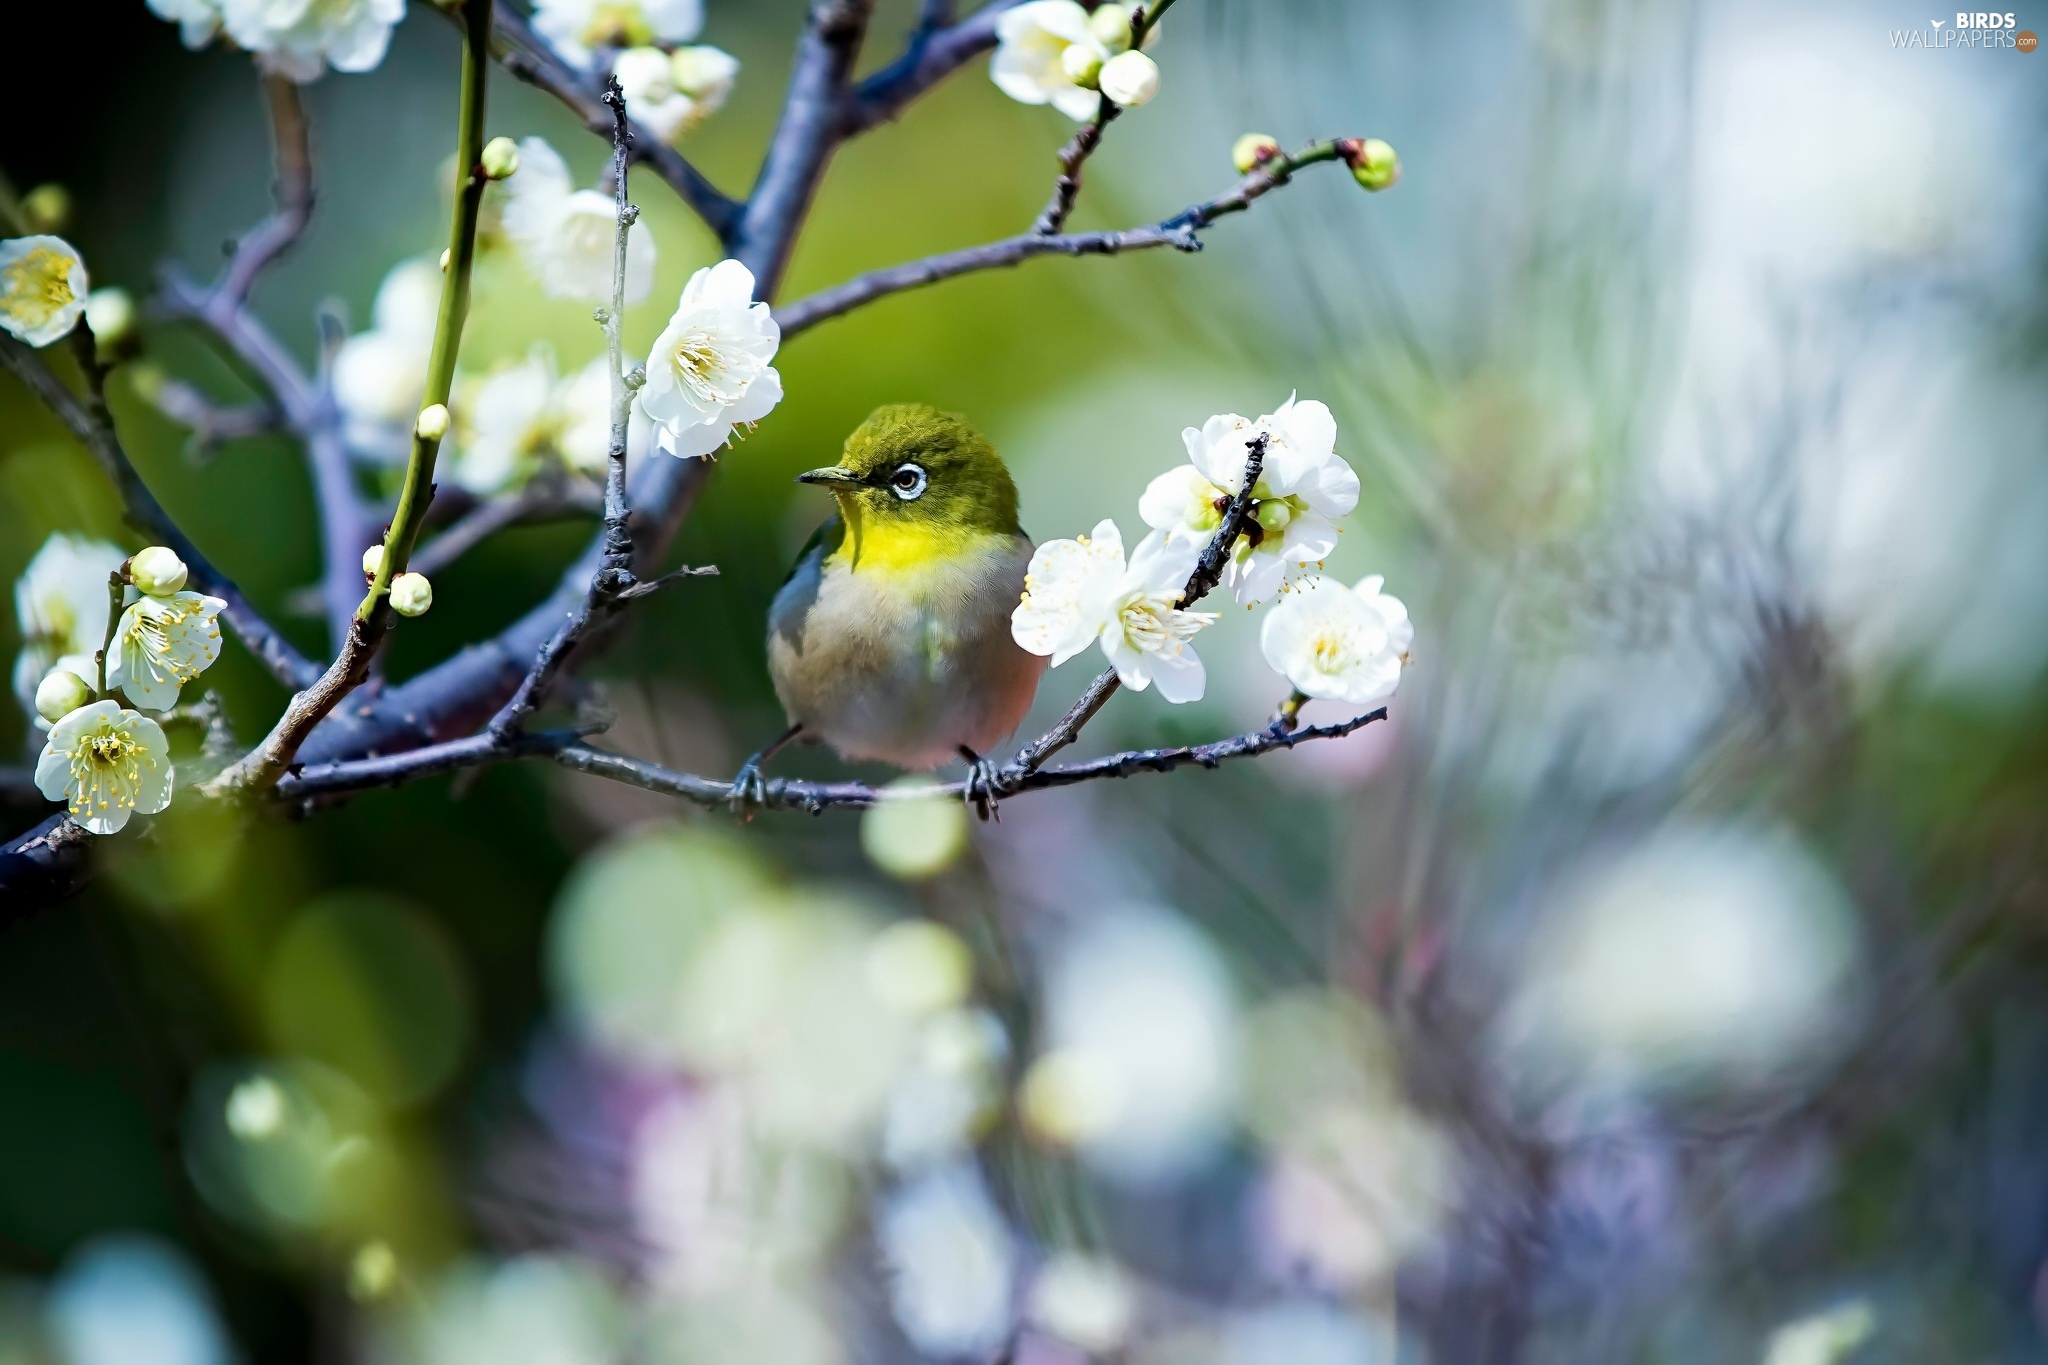 flowers, spring, japanese white-eye, twig, bird - birds wallpapers